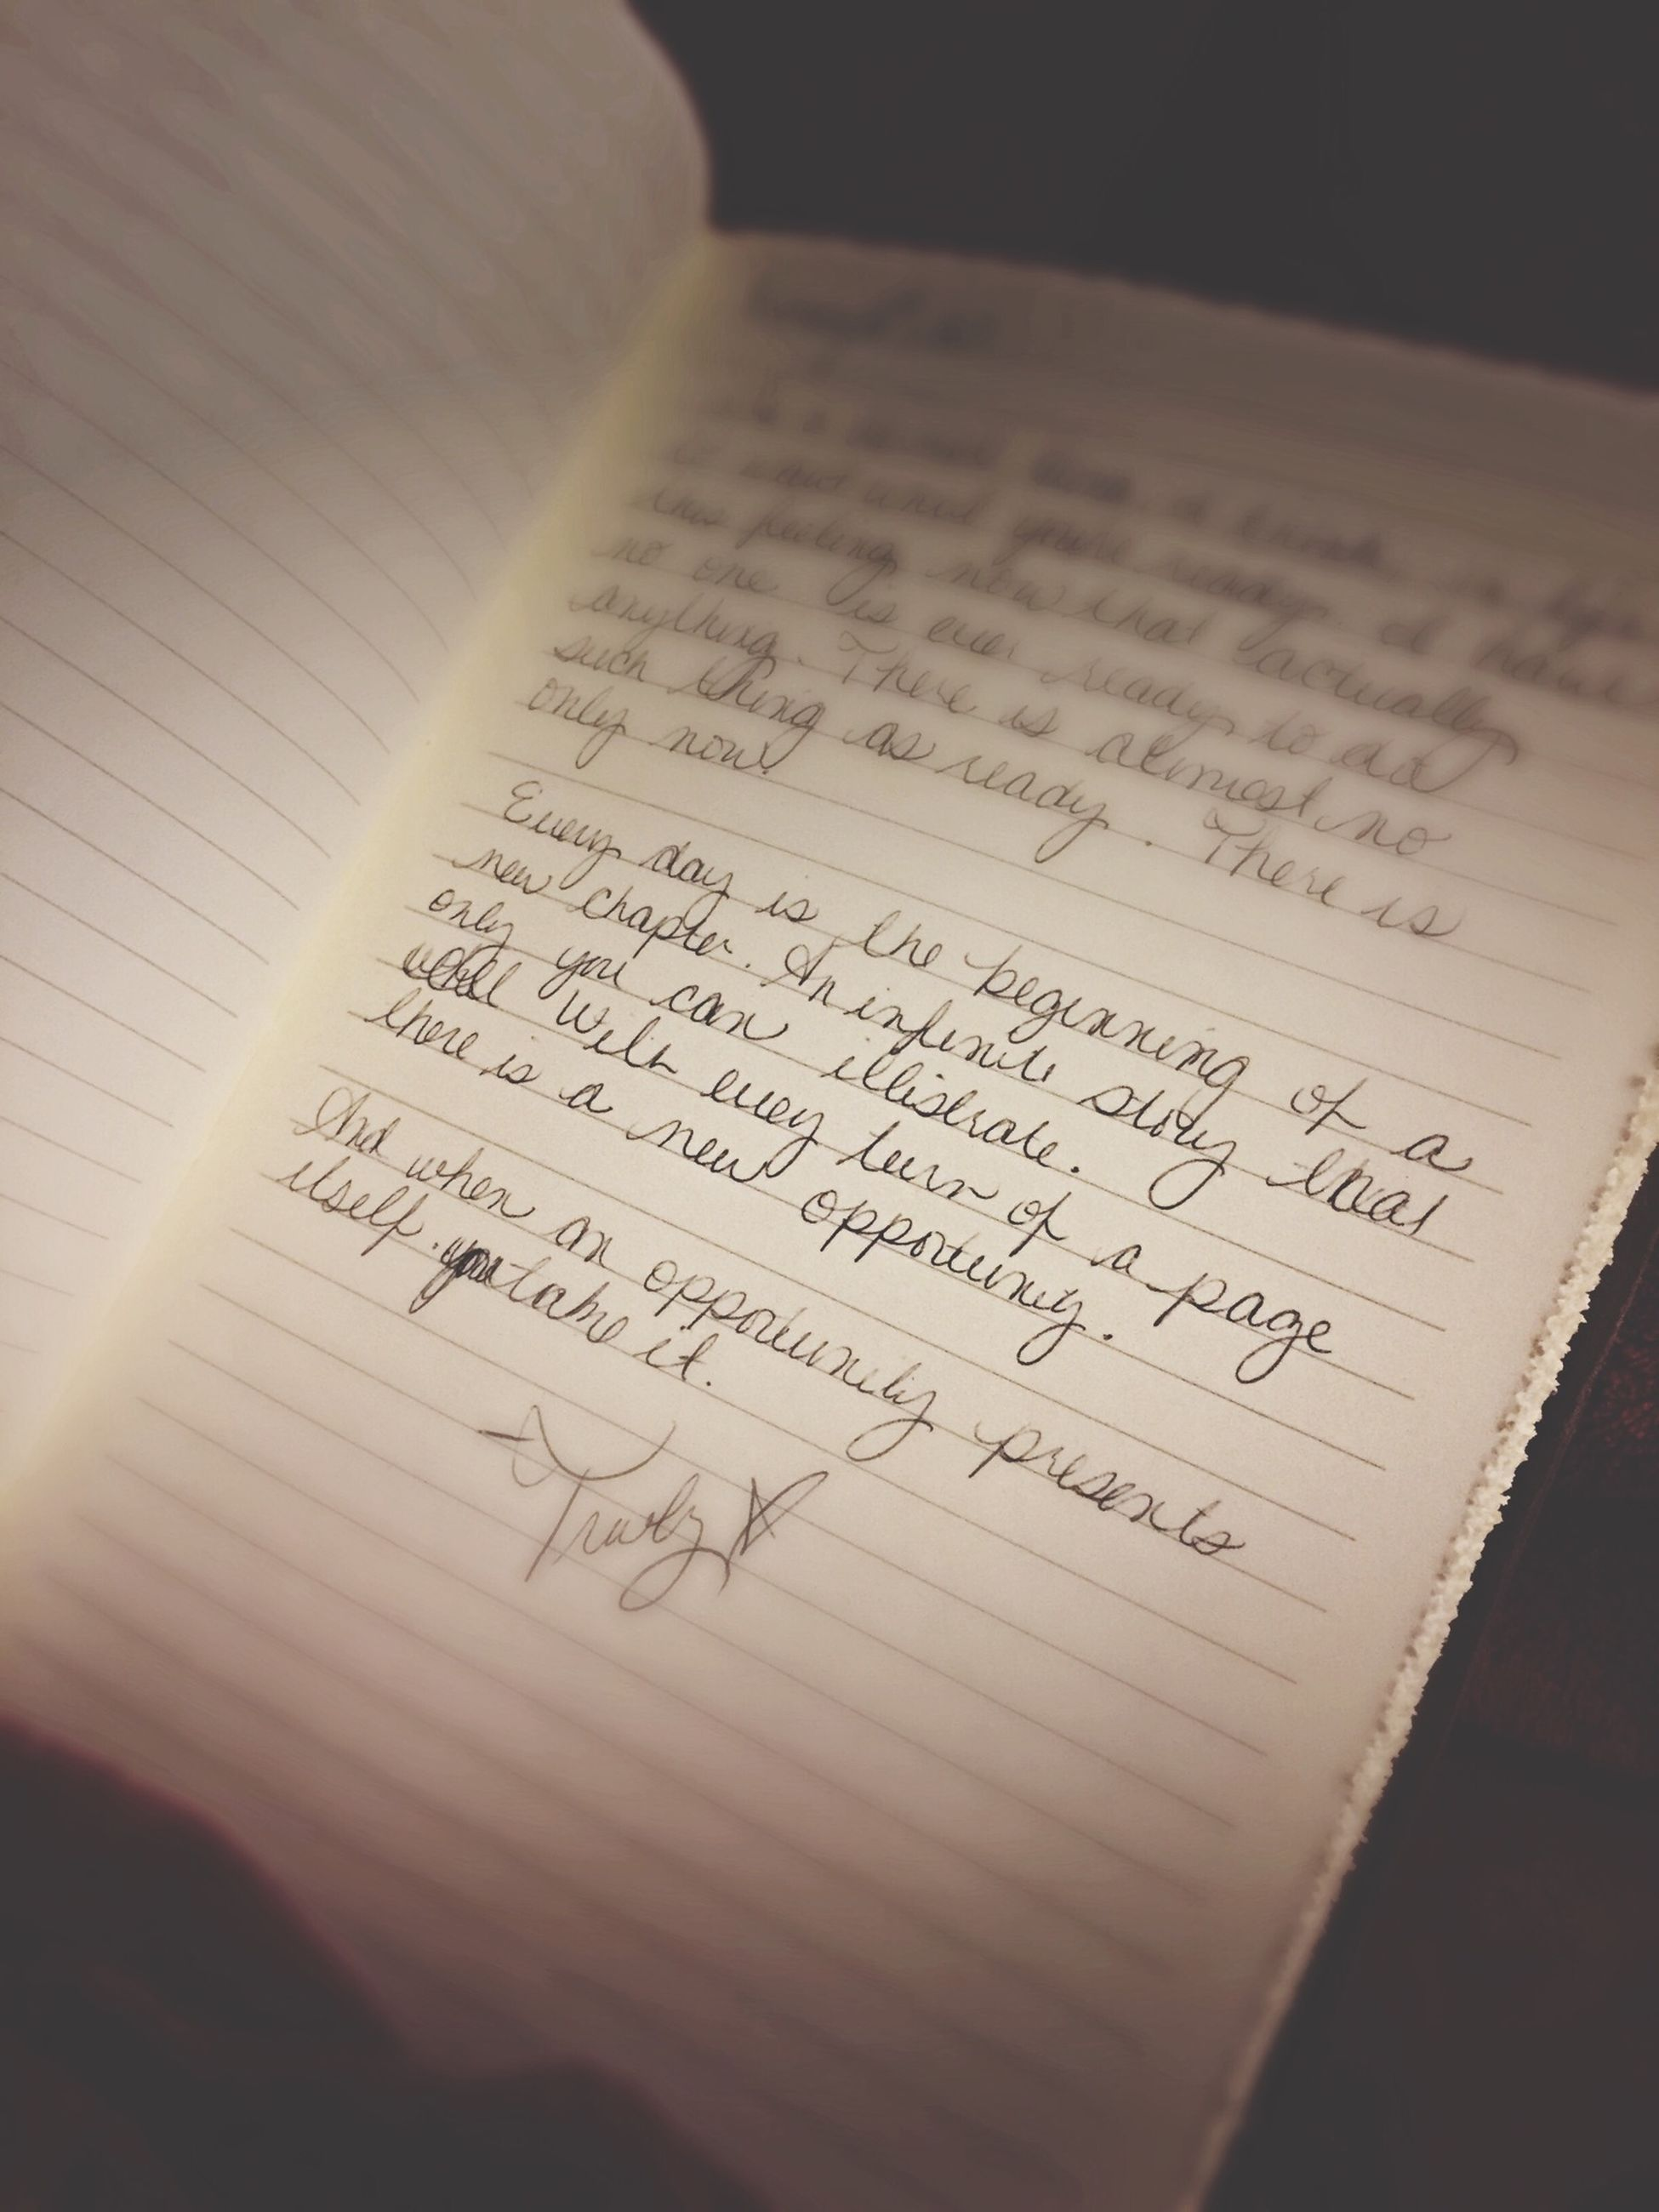 indoors, text, paper, western script, communication, book, table, education, still life, close-up, high angle view, no people, wood - material, handwriting, page, selective focus, pen, document, open, message